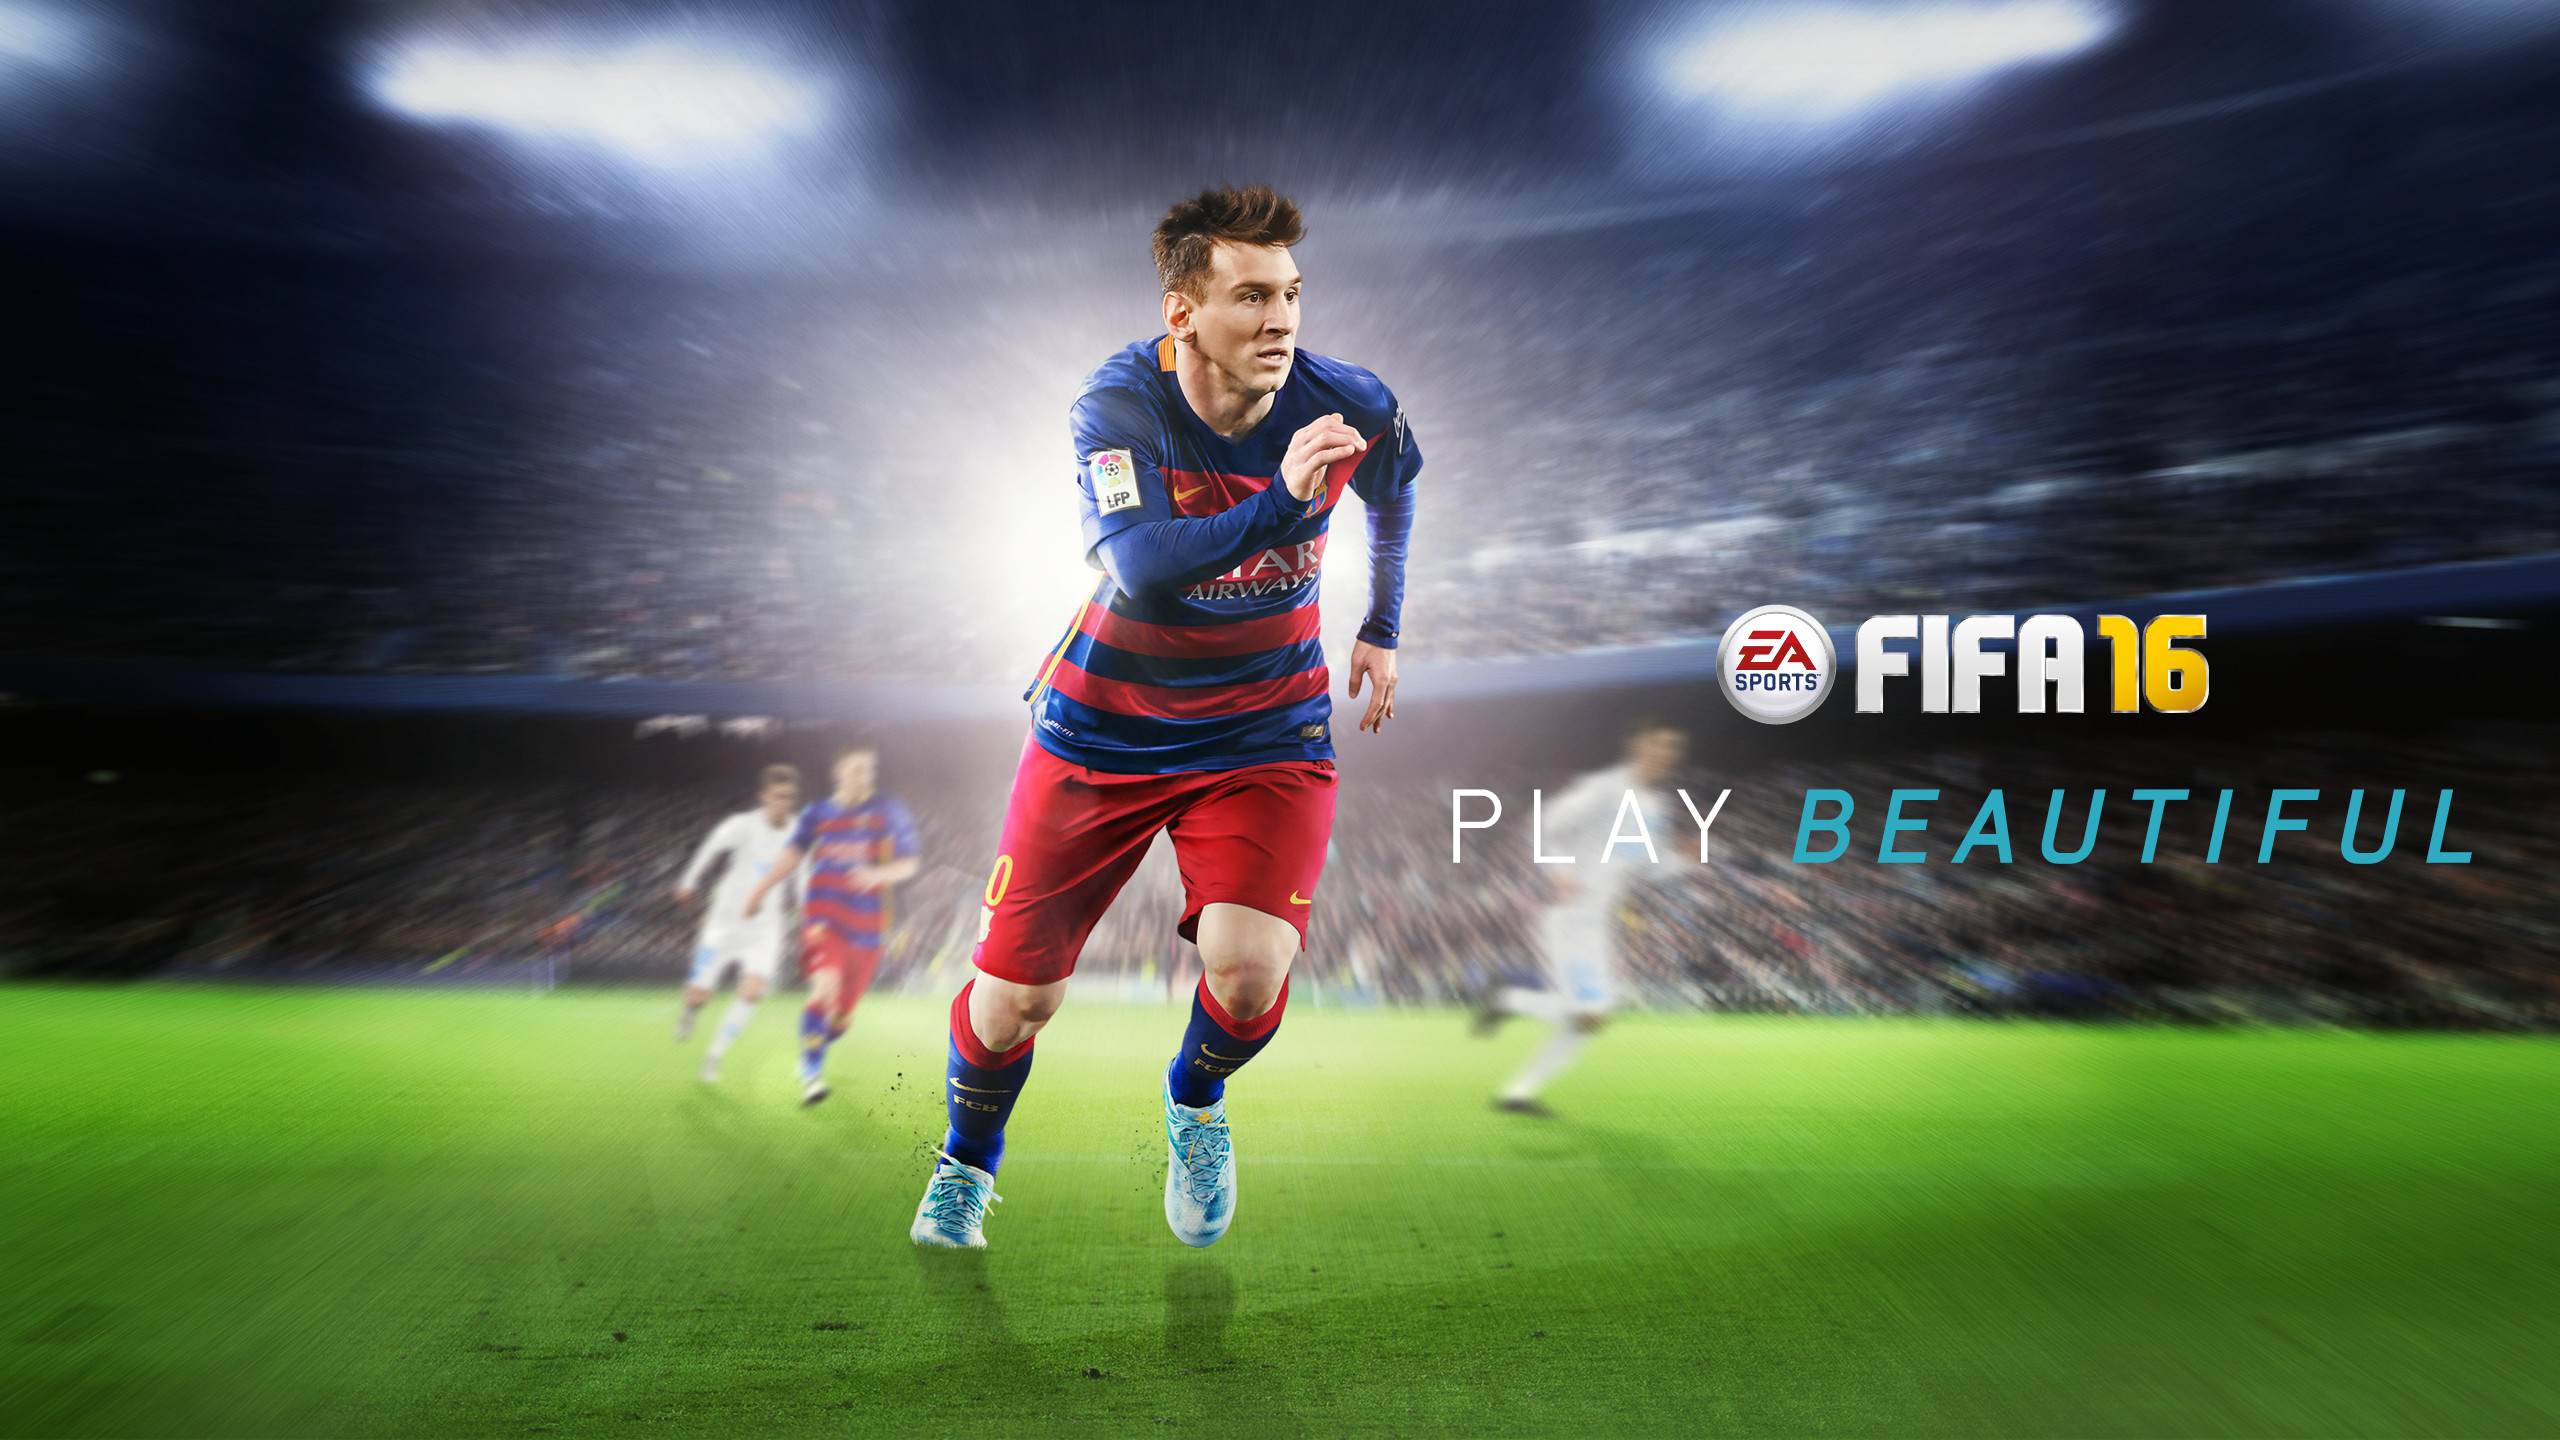 Res: 2560x1440, FIFA 16 Game Wallpapers HD Wallpapers